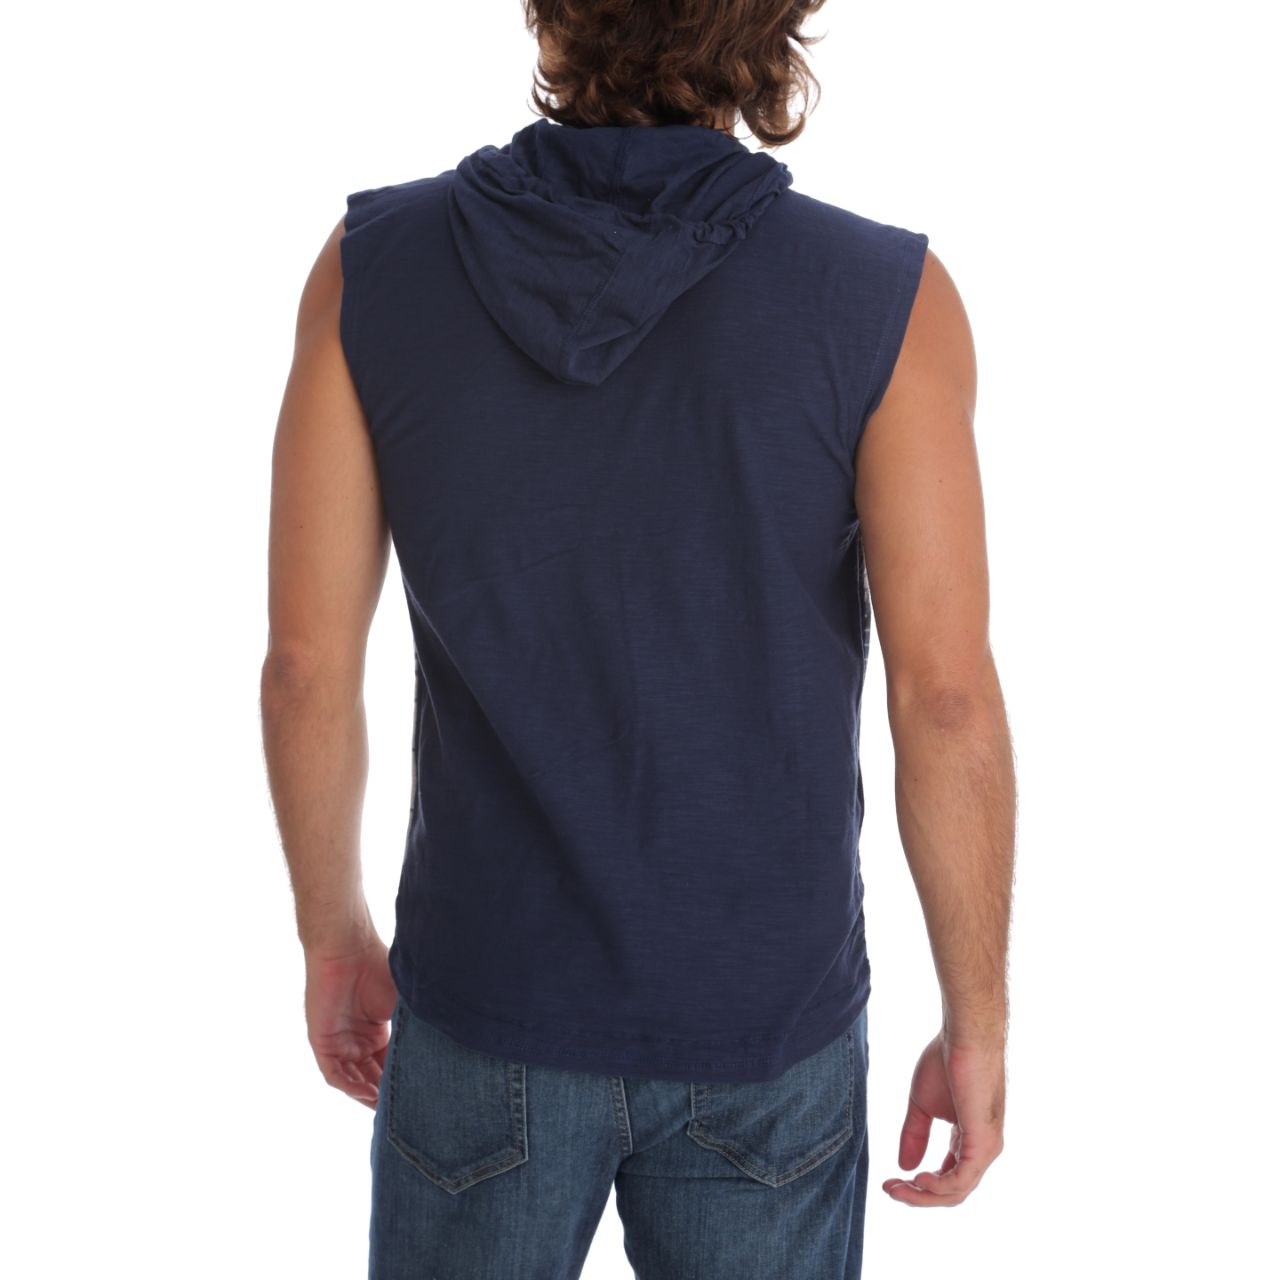 Mack Hooded Muscle Tank